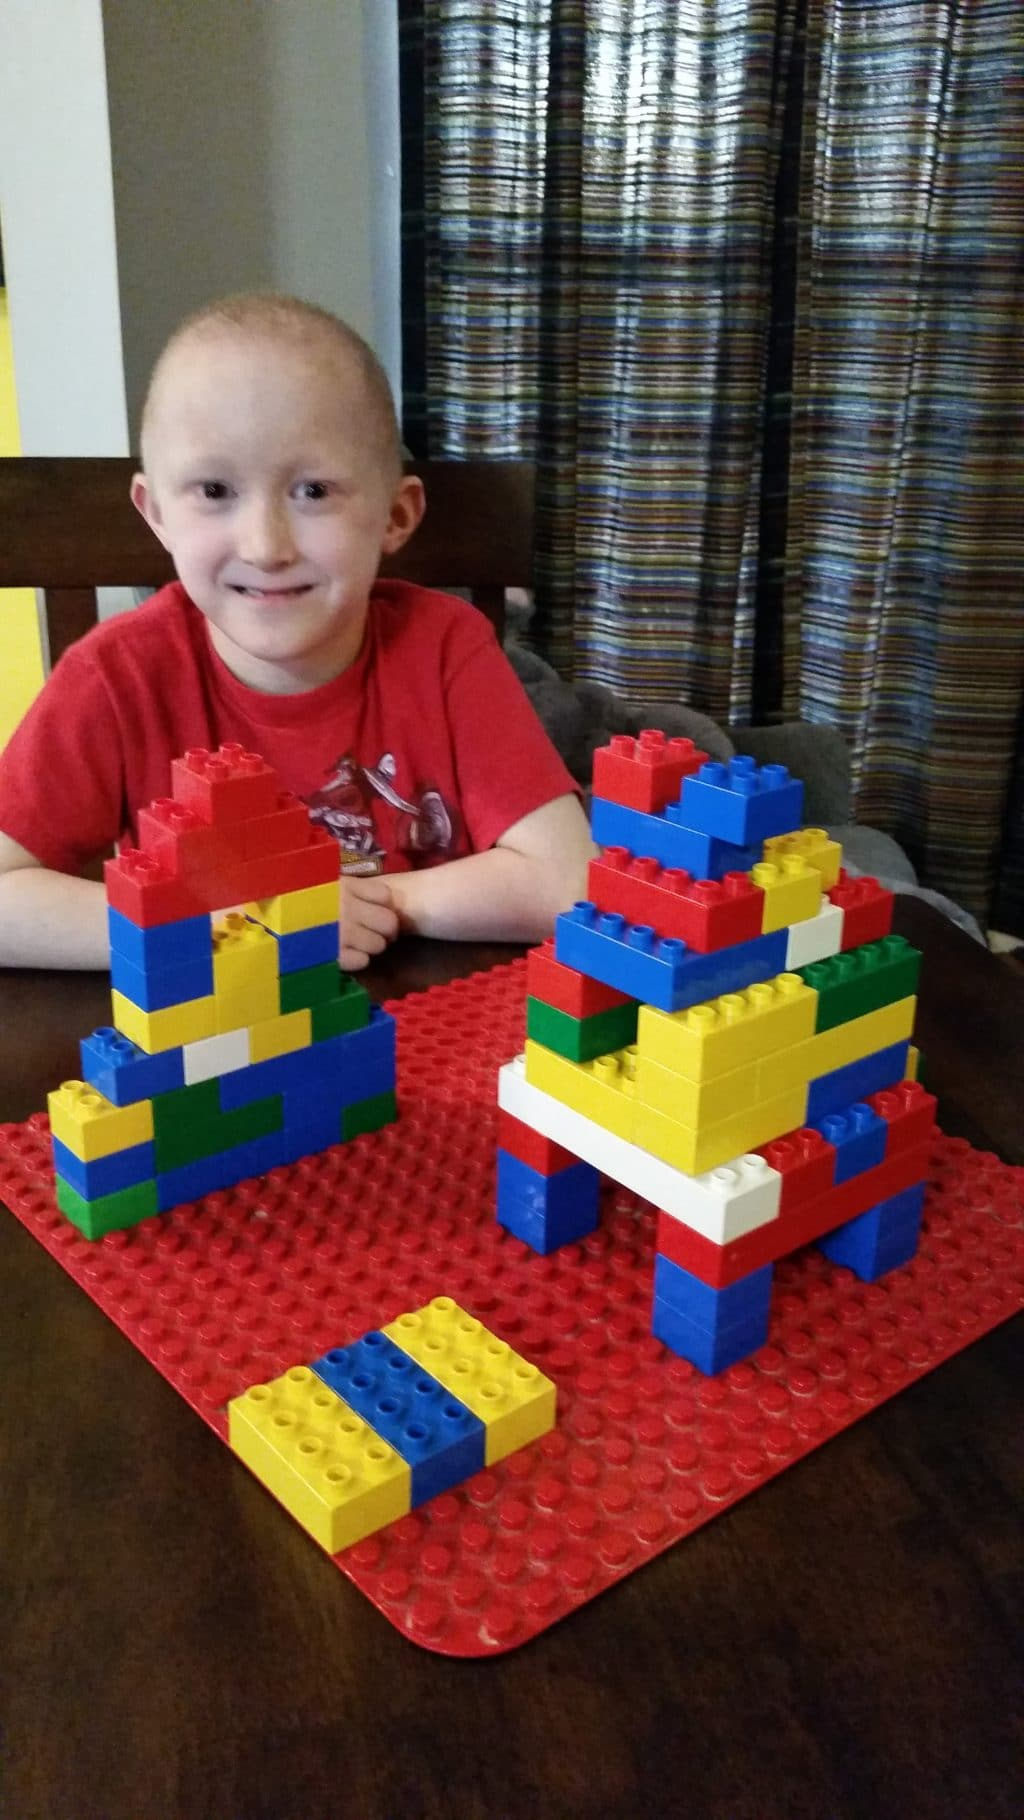 Rocket Ship and Space Station with LEGO® DUPLO® BRICKS